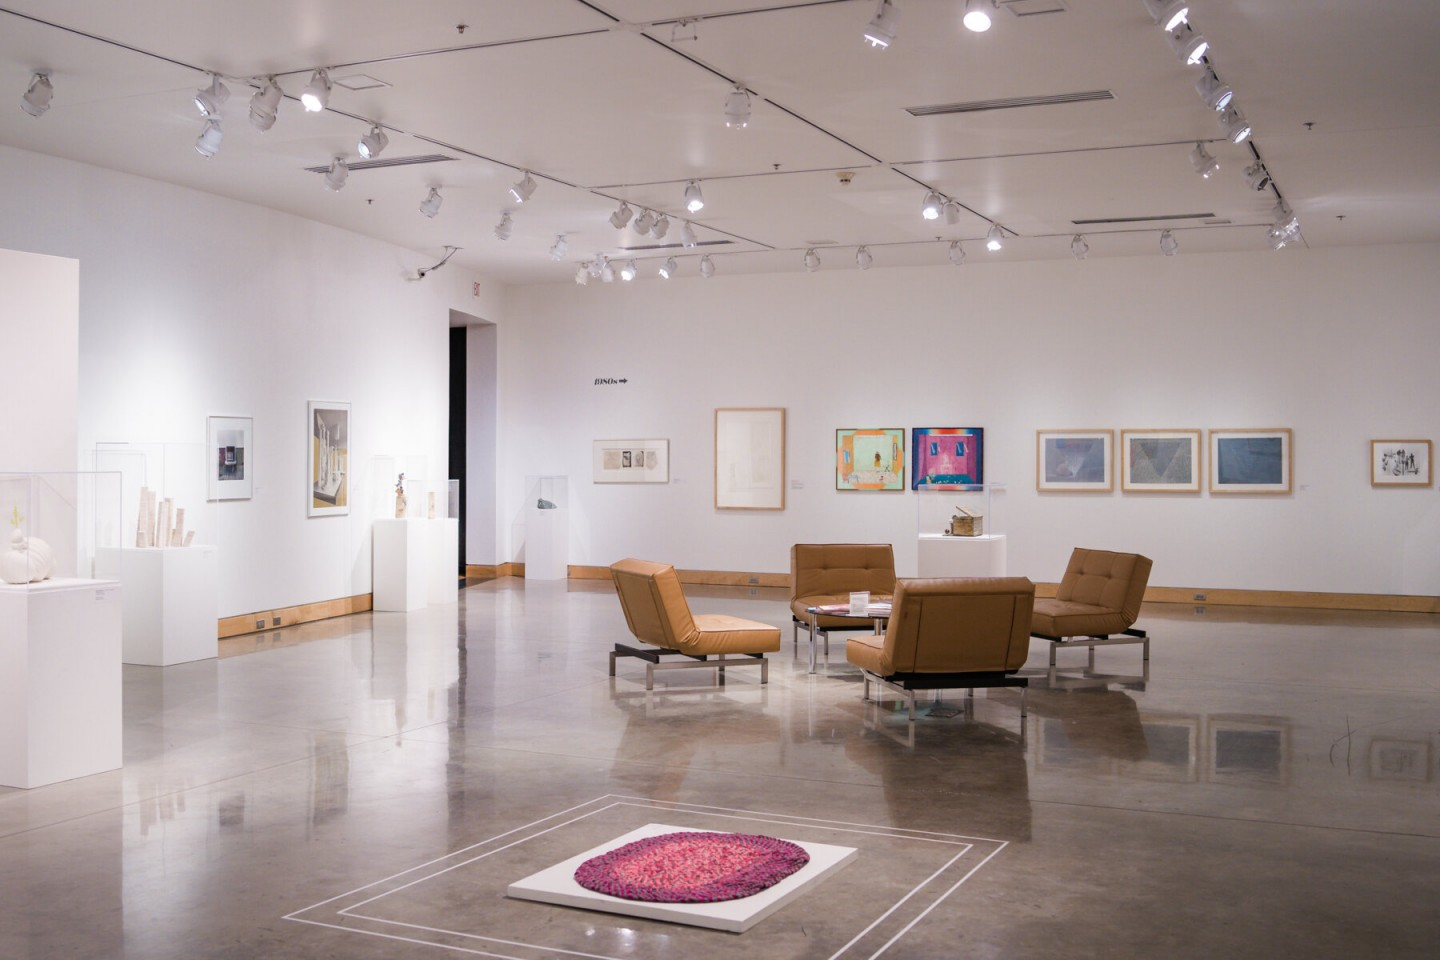 Plains Art Museum Events and Concerts in Fargo - Plains ...